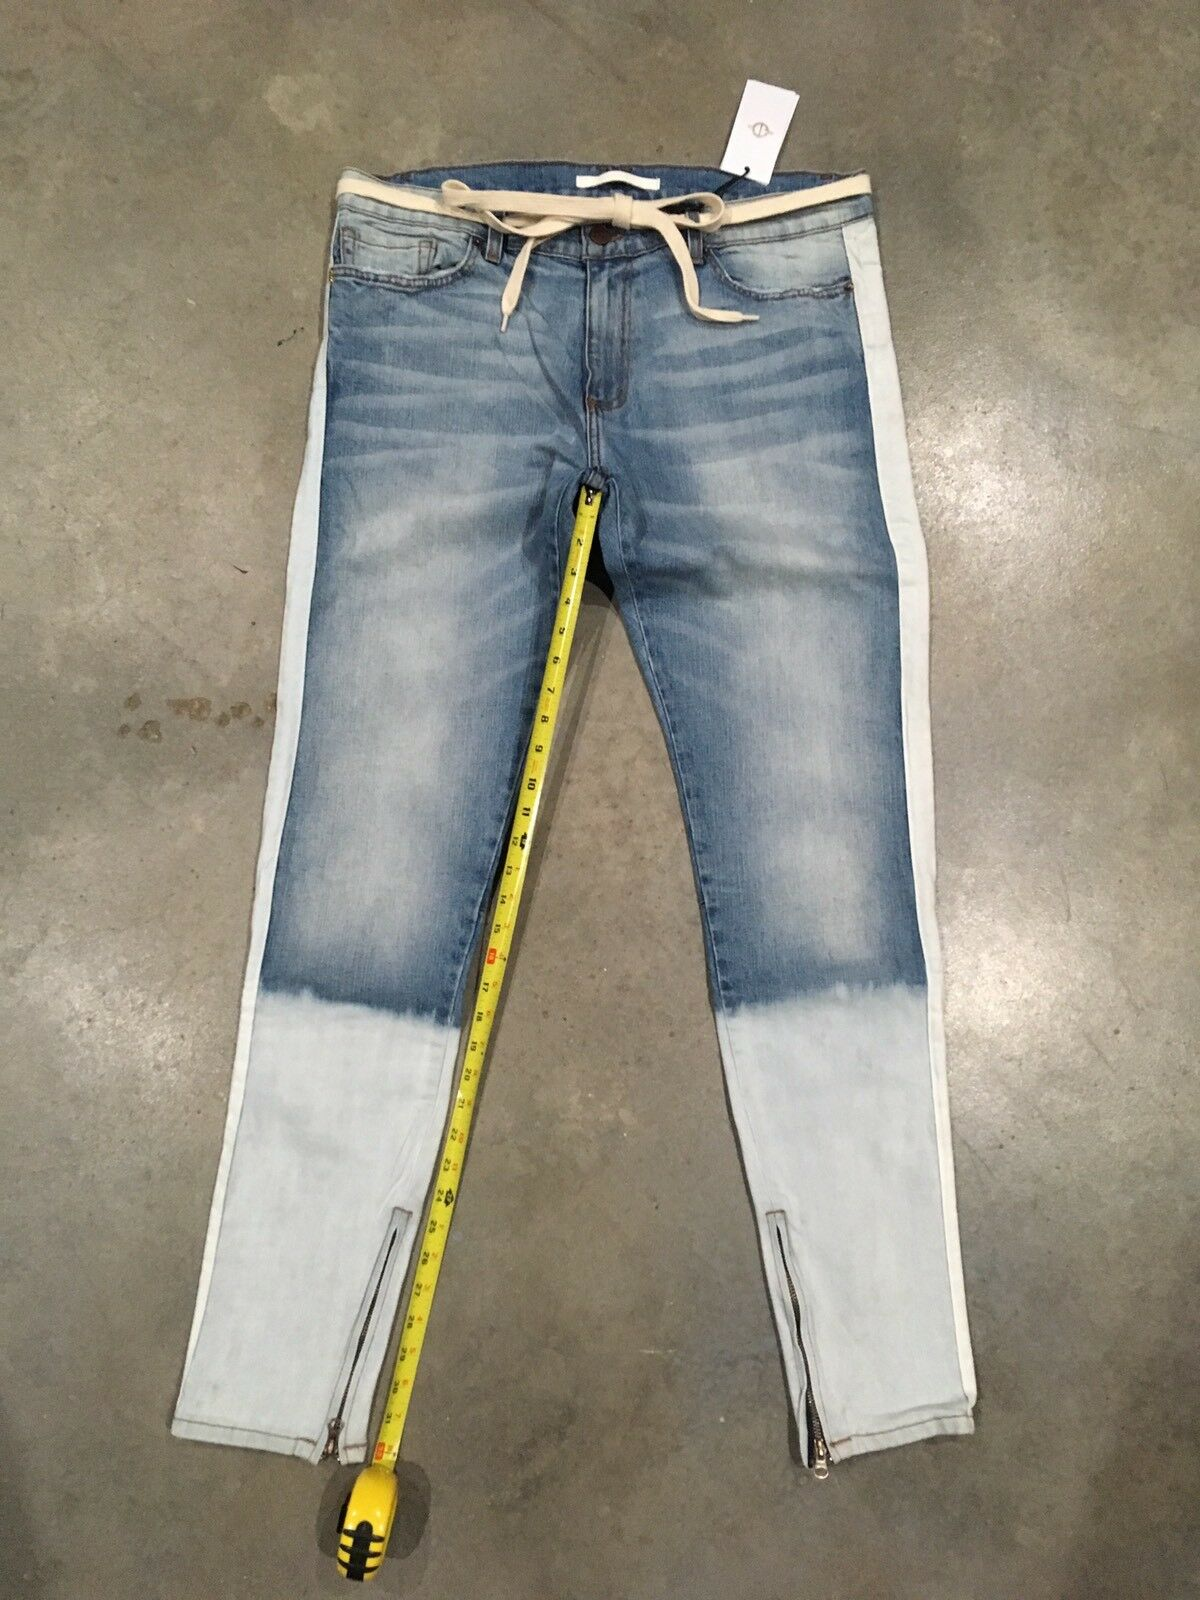 golden Denim Light Wash bleach Fade Tapered Jeans Sz.38 NWT 100% Authentic